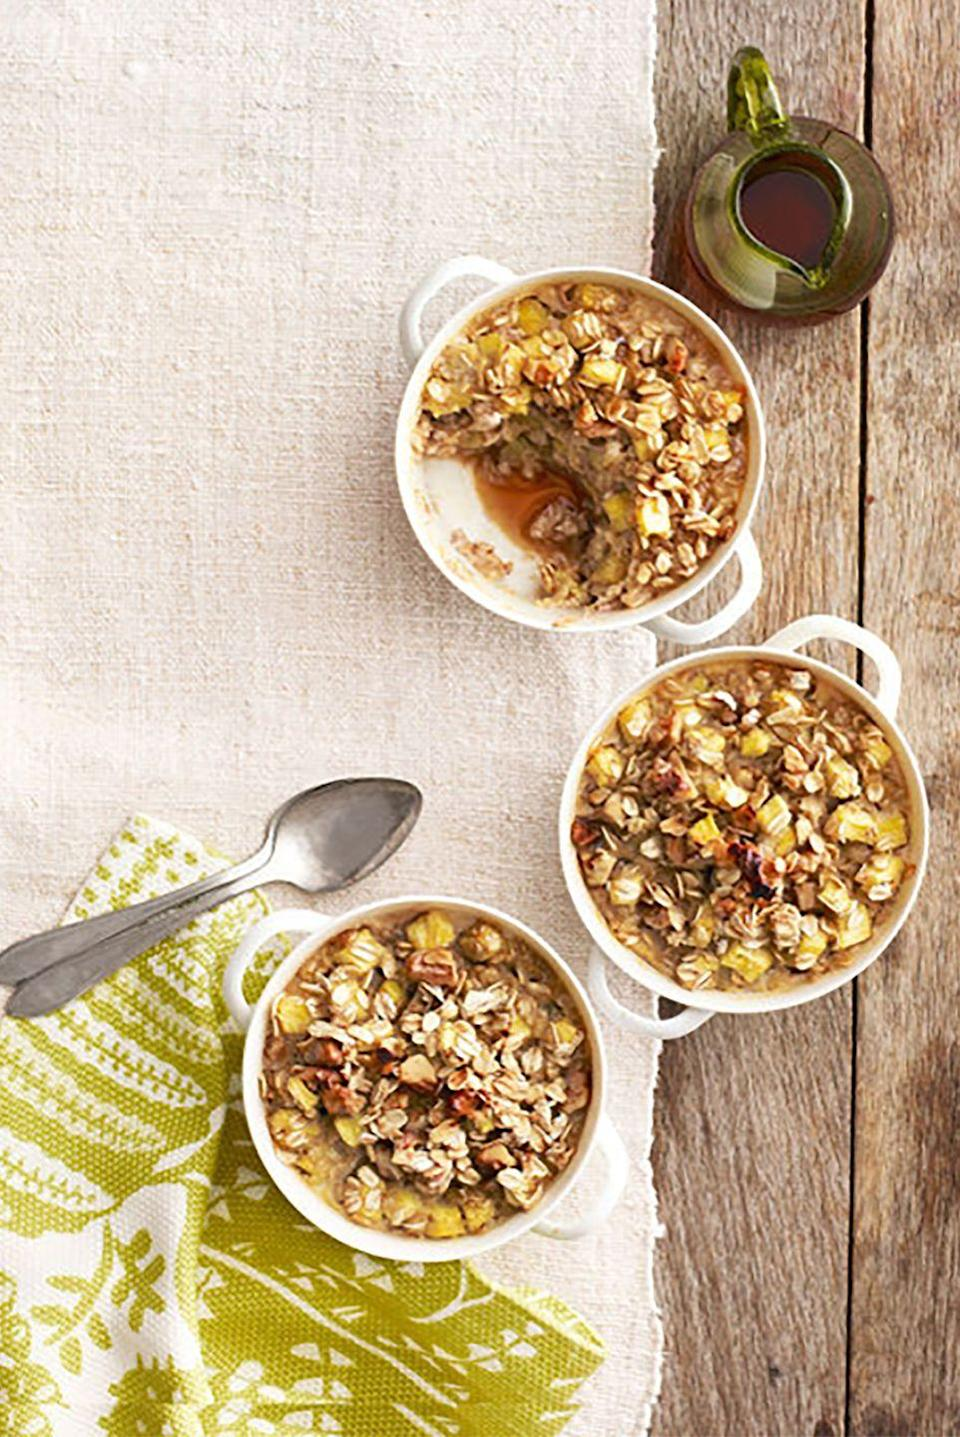 """<p>Zesty ginger and juicy pineapple give basic oatmeal an unexpected flair.</p><p><strong><a href=""""https://www.countryliving.com/food-drinks/recipes/a4779/pineapple-ginger-walnut-oatmeal-recipe-clv0314/"""" rel=""""nofollow noopener"""" target=""""_blank"""" data-ylk=""""slk:Get the recipe"""" class=""""link rapid-noclick-resp"""">Get the recipe</a>.</strong></p>"""